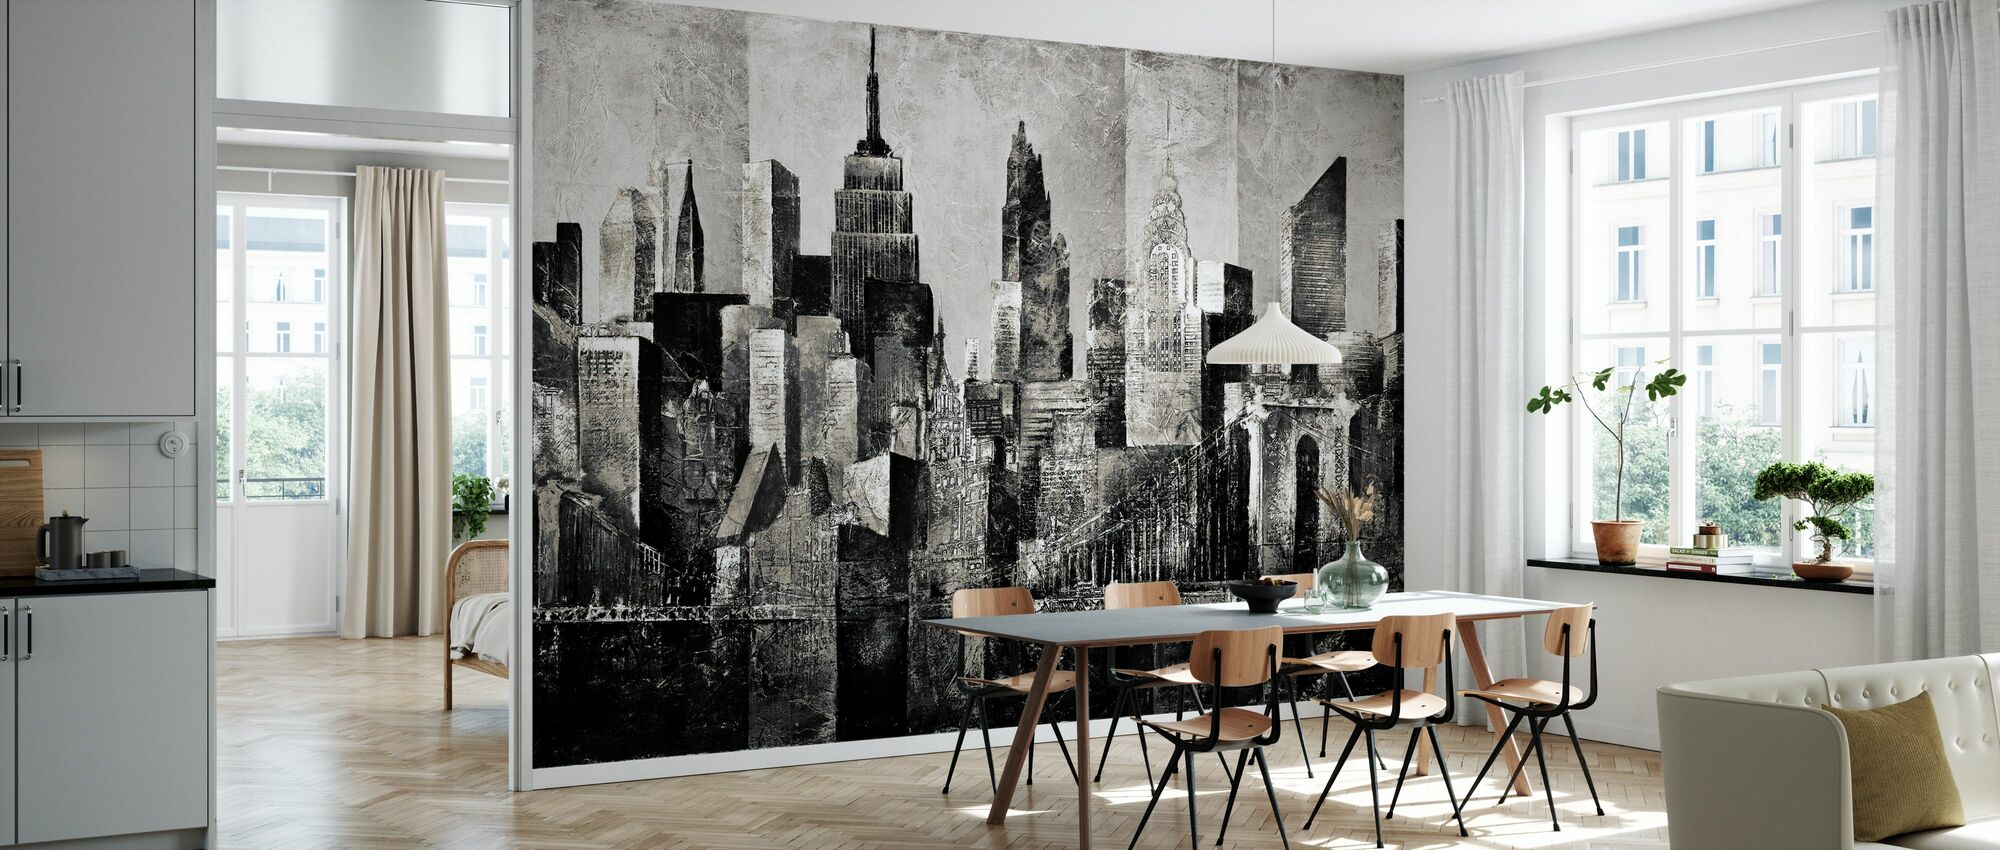 new york skyline kunst - bw - Behang - Keuken